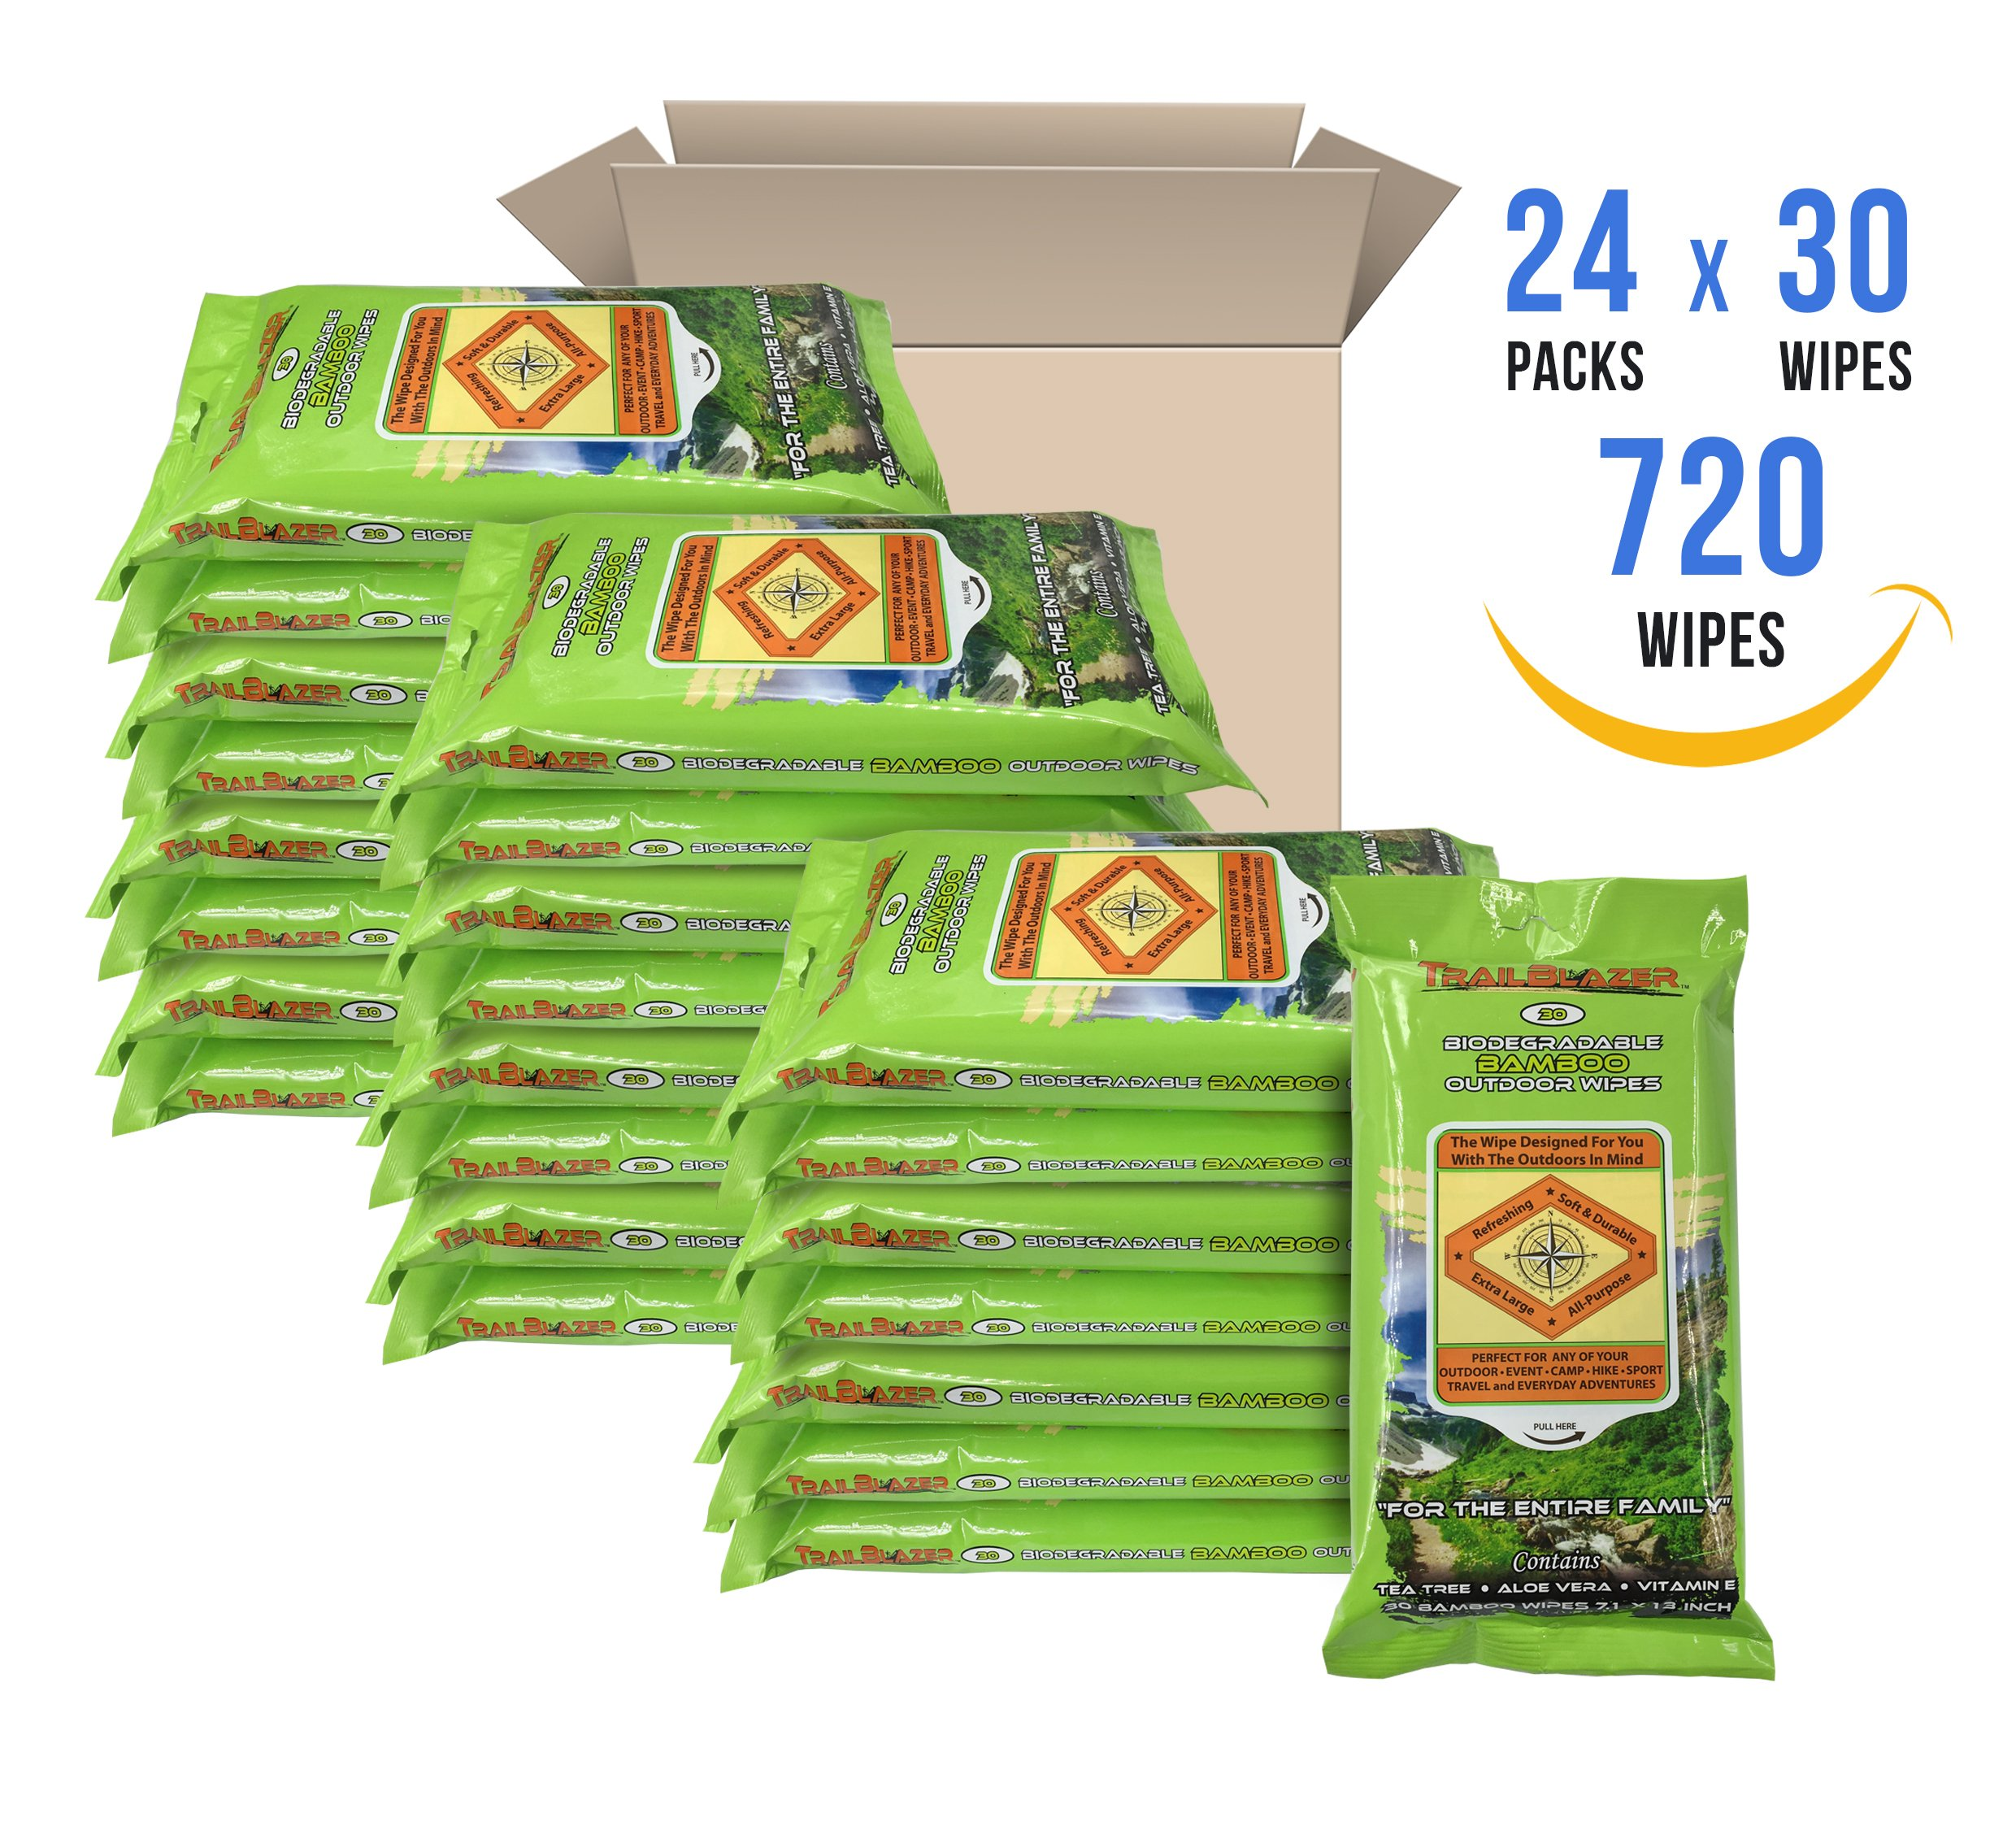 Trailblazer Biodegradable Wet Wipes for No Rinse Bathing and Showers. Great for Camping, Travel, Body Cleansing, Personal Hygiene and Cleaning. Vitamin E and Aloe Enriche (24 Packs)